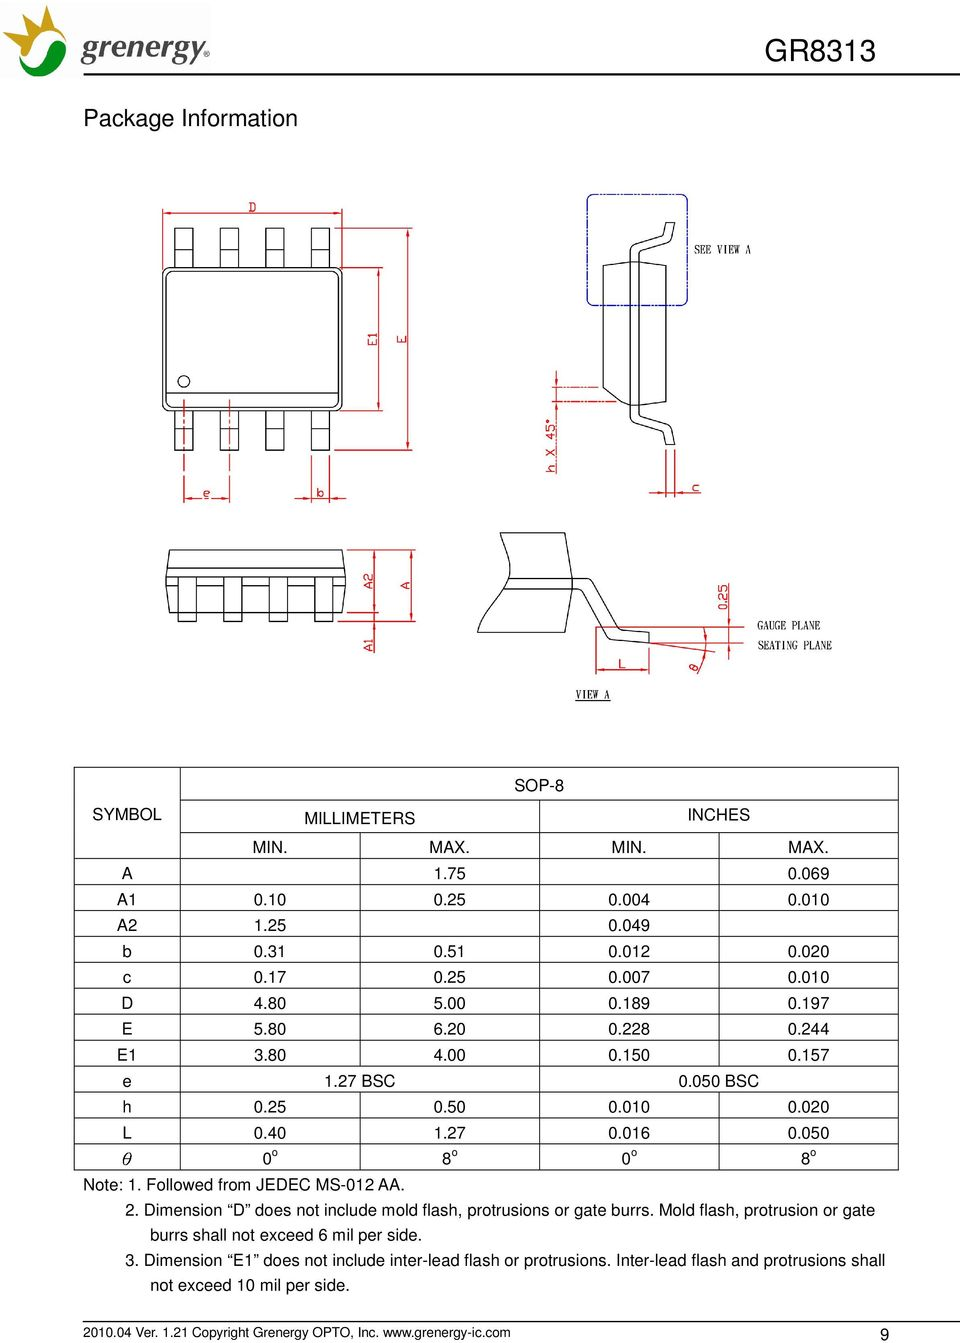 3 Channel Supervisor Ic For Power Supply Pdf Bass Boost Section Output Driver With Followed From Jedec Ms 012 Aa 2 Dimension D Does Not Include Mold